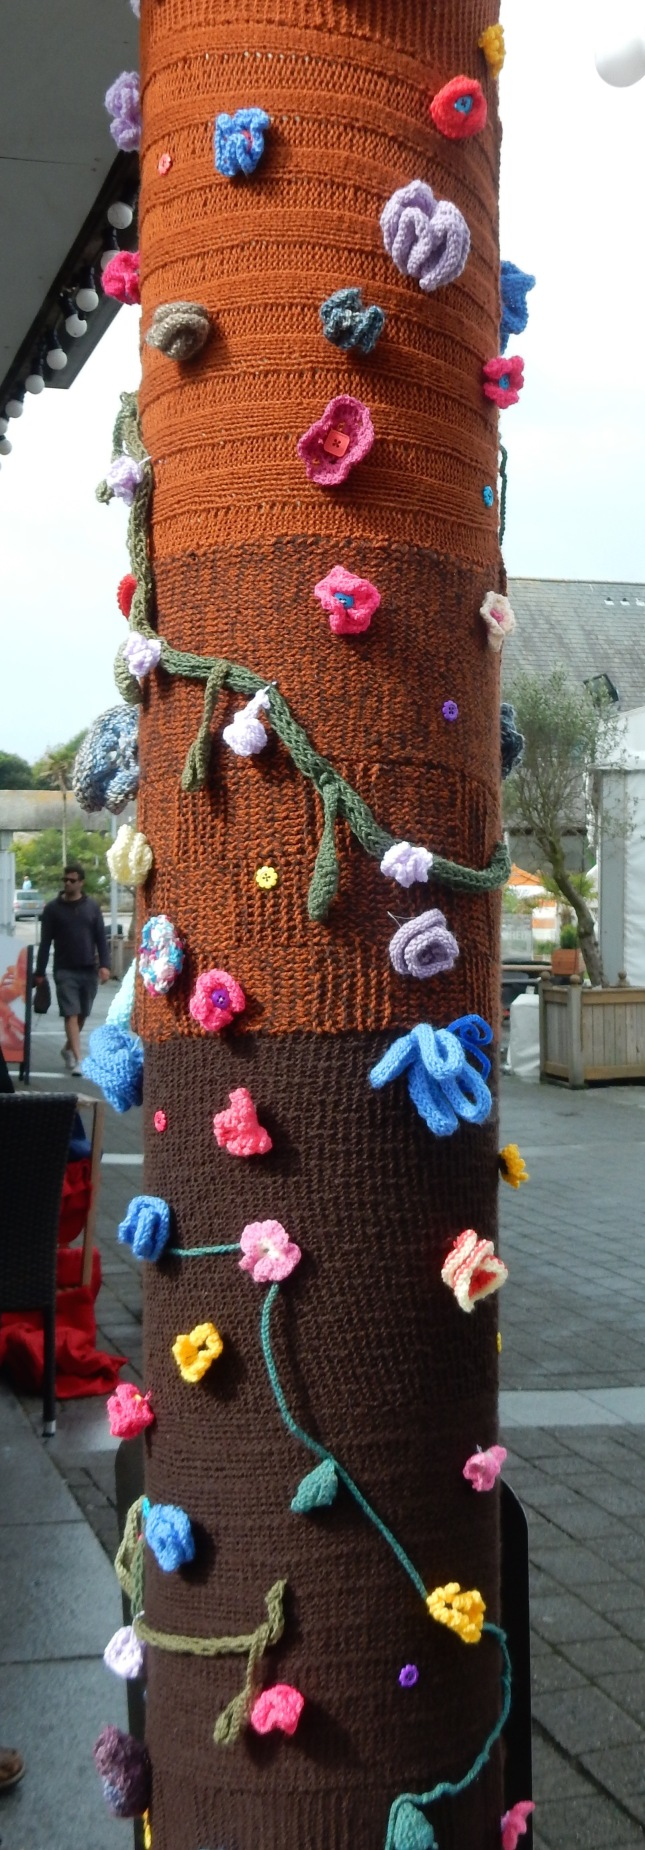 T spotted some yarn bombing on the way to the Maritime Museum